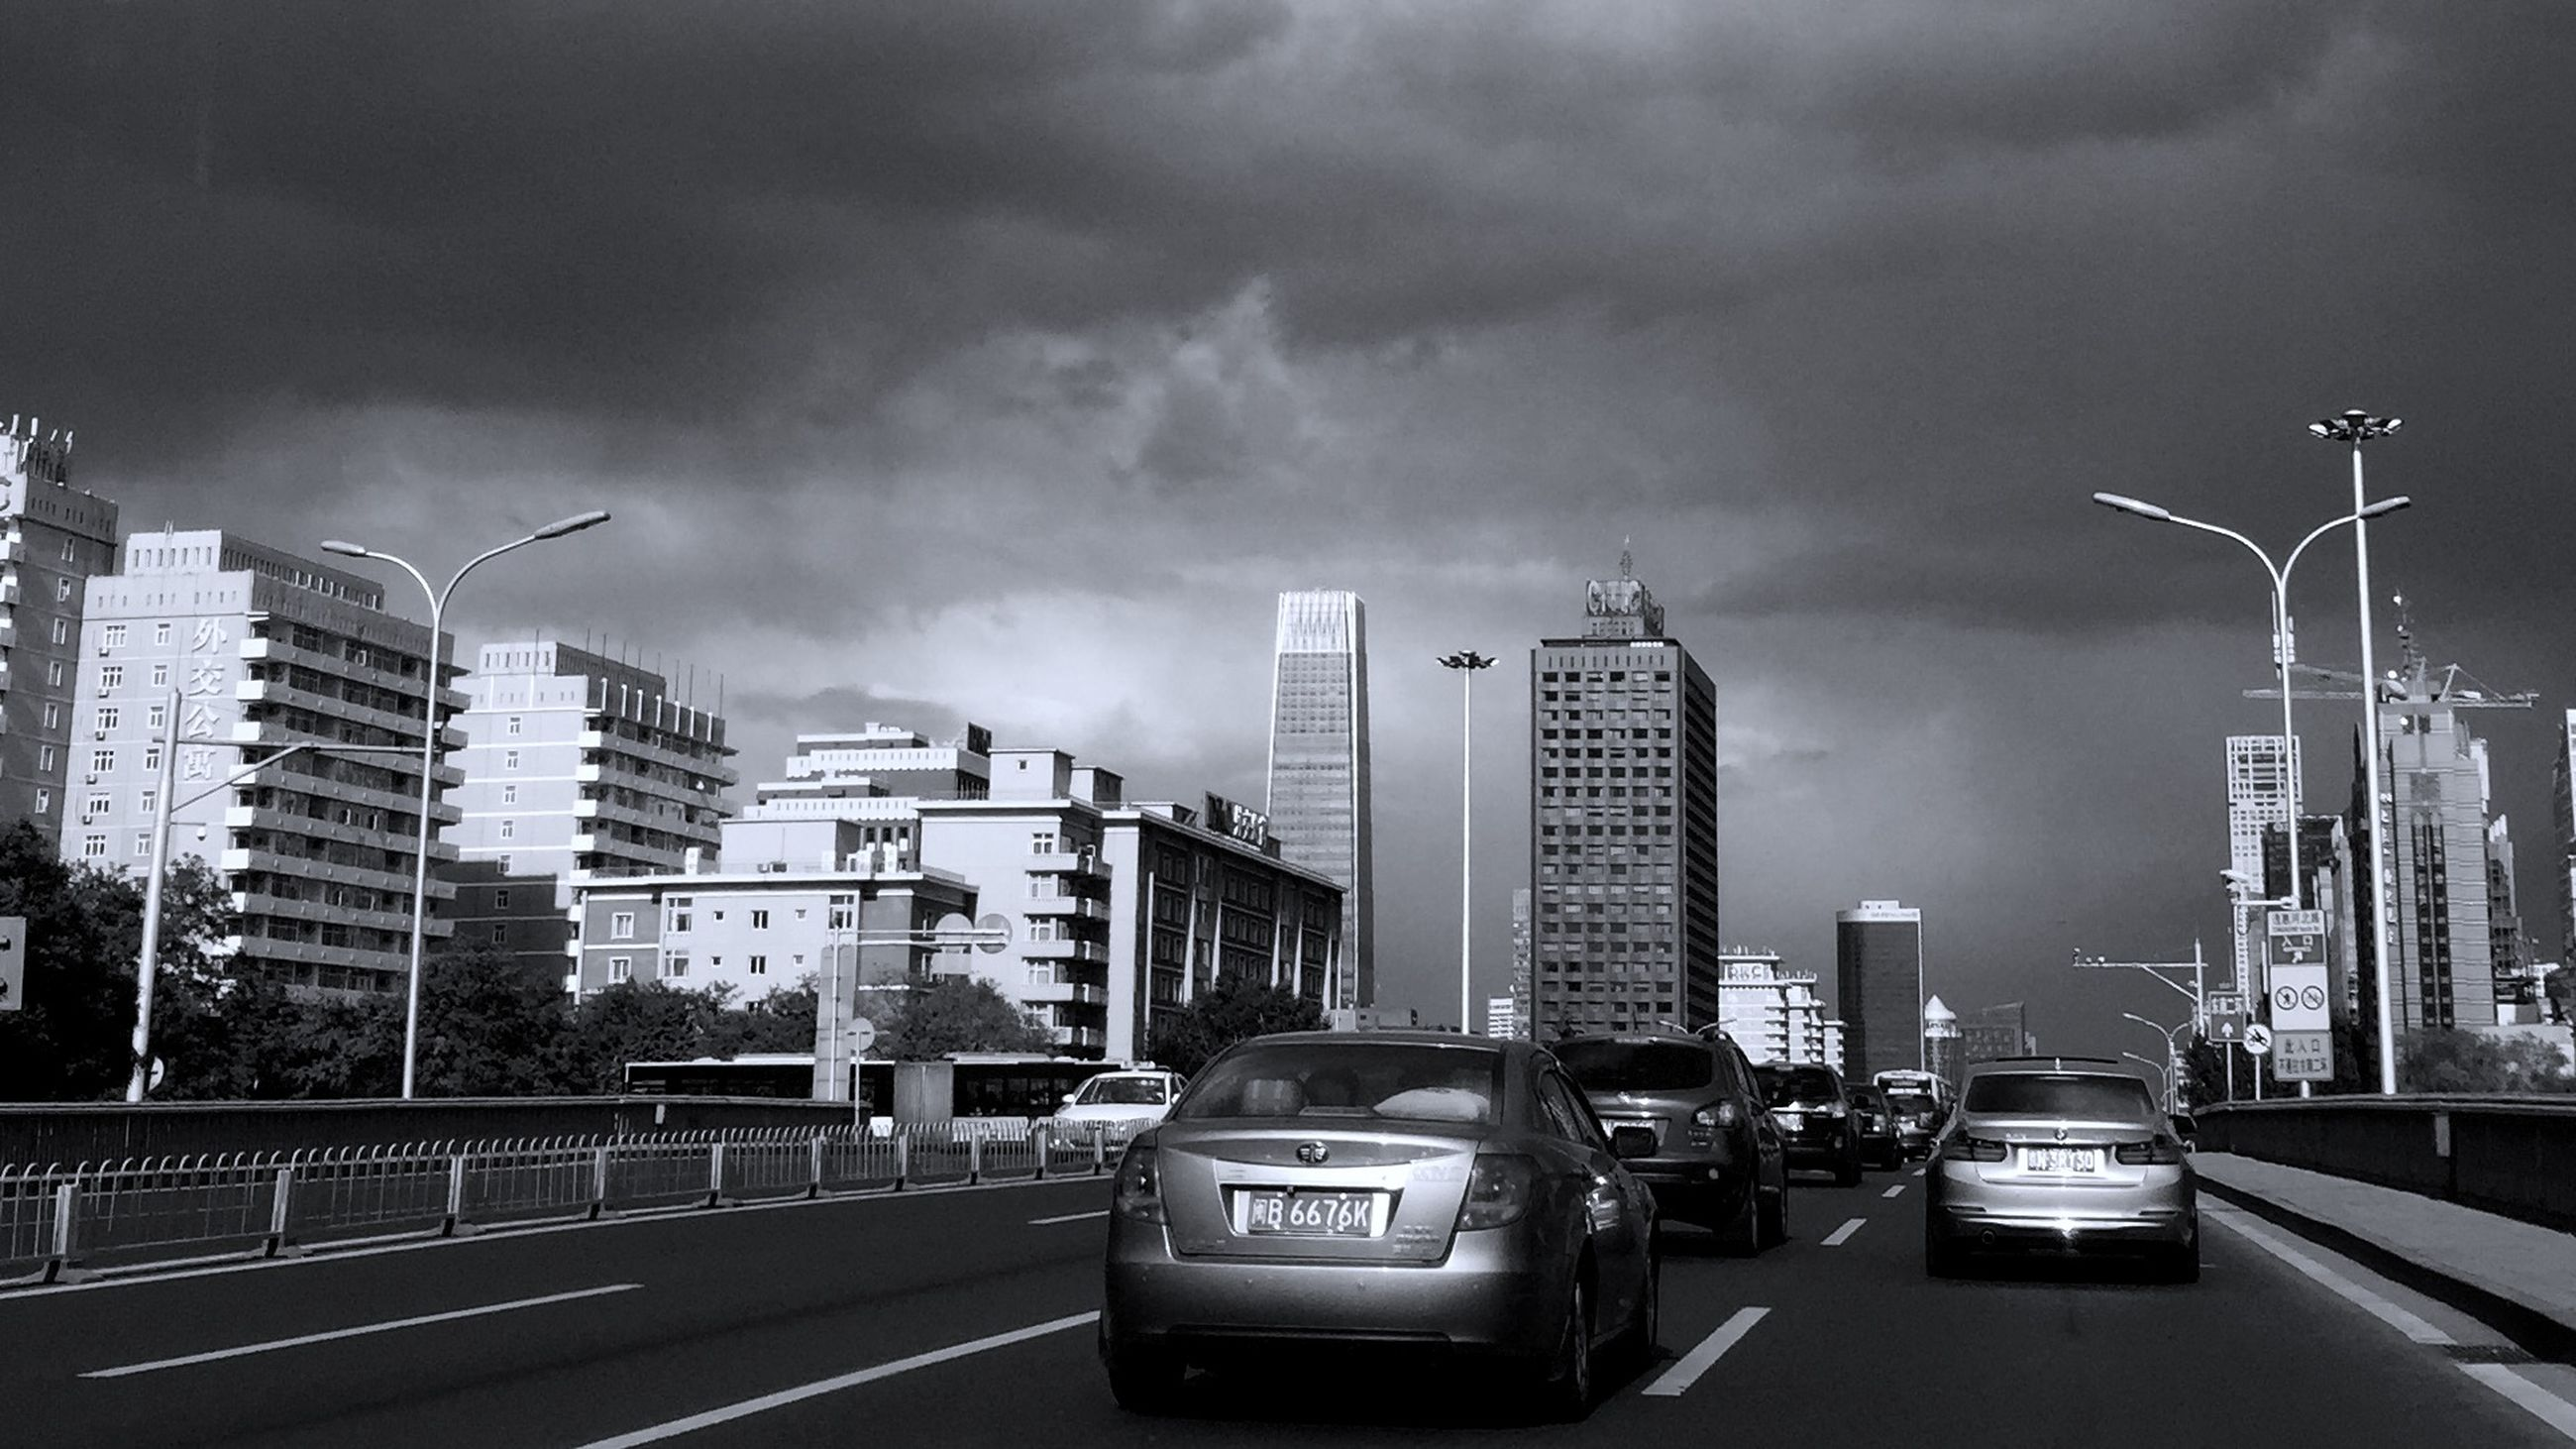 building exterior, architecture, city, built structure, transportation, sky, car, mode of transport, land vehicle, skyscraper, cloud - sky, street, modern, road, cloudy, city life, street light, tall - high, office building, on the move